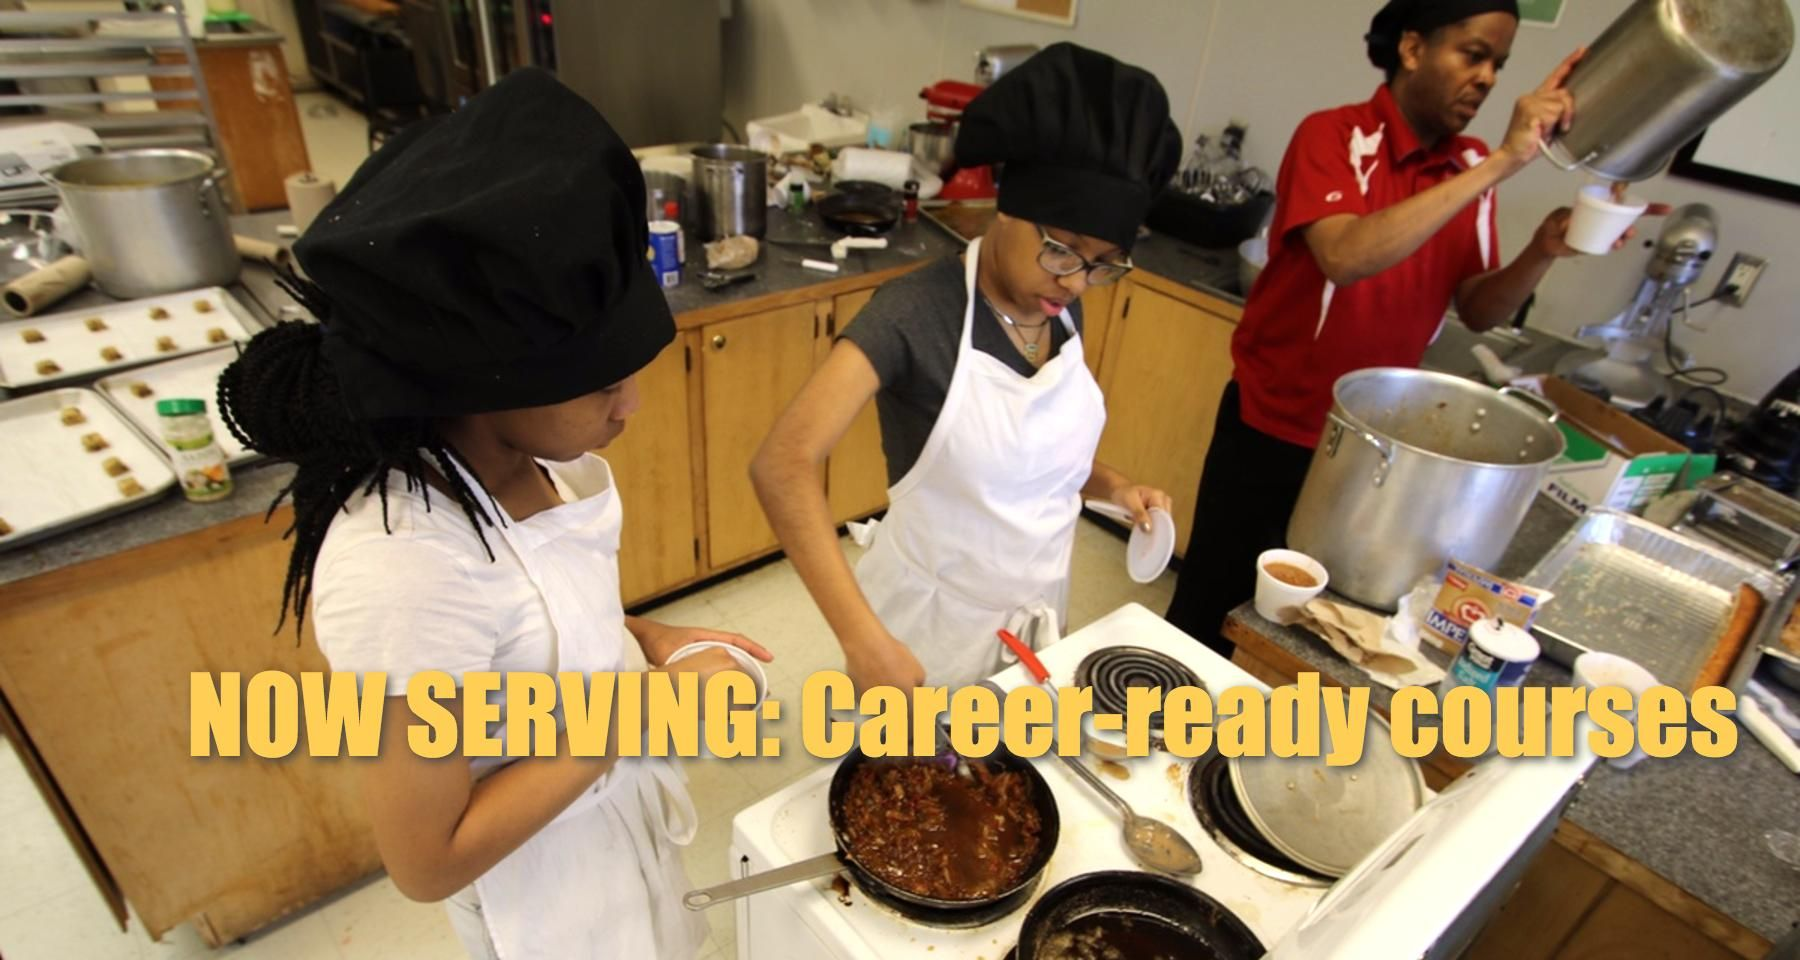 Culinary-arts students at Chatham Central High School prepare meals for the staff there.